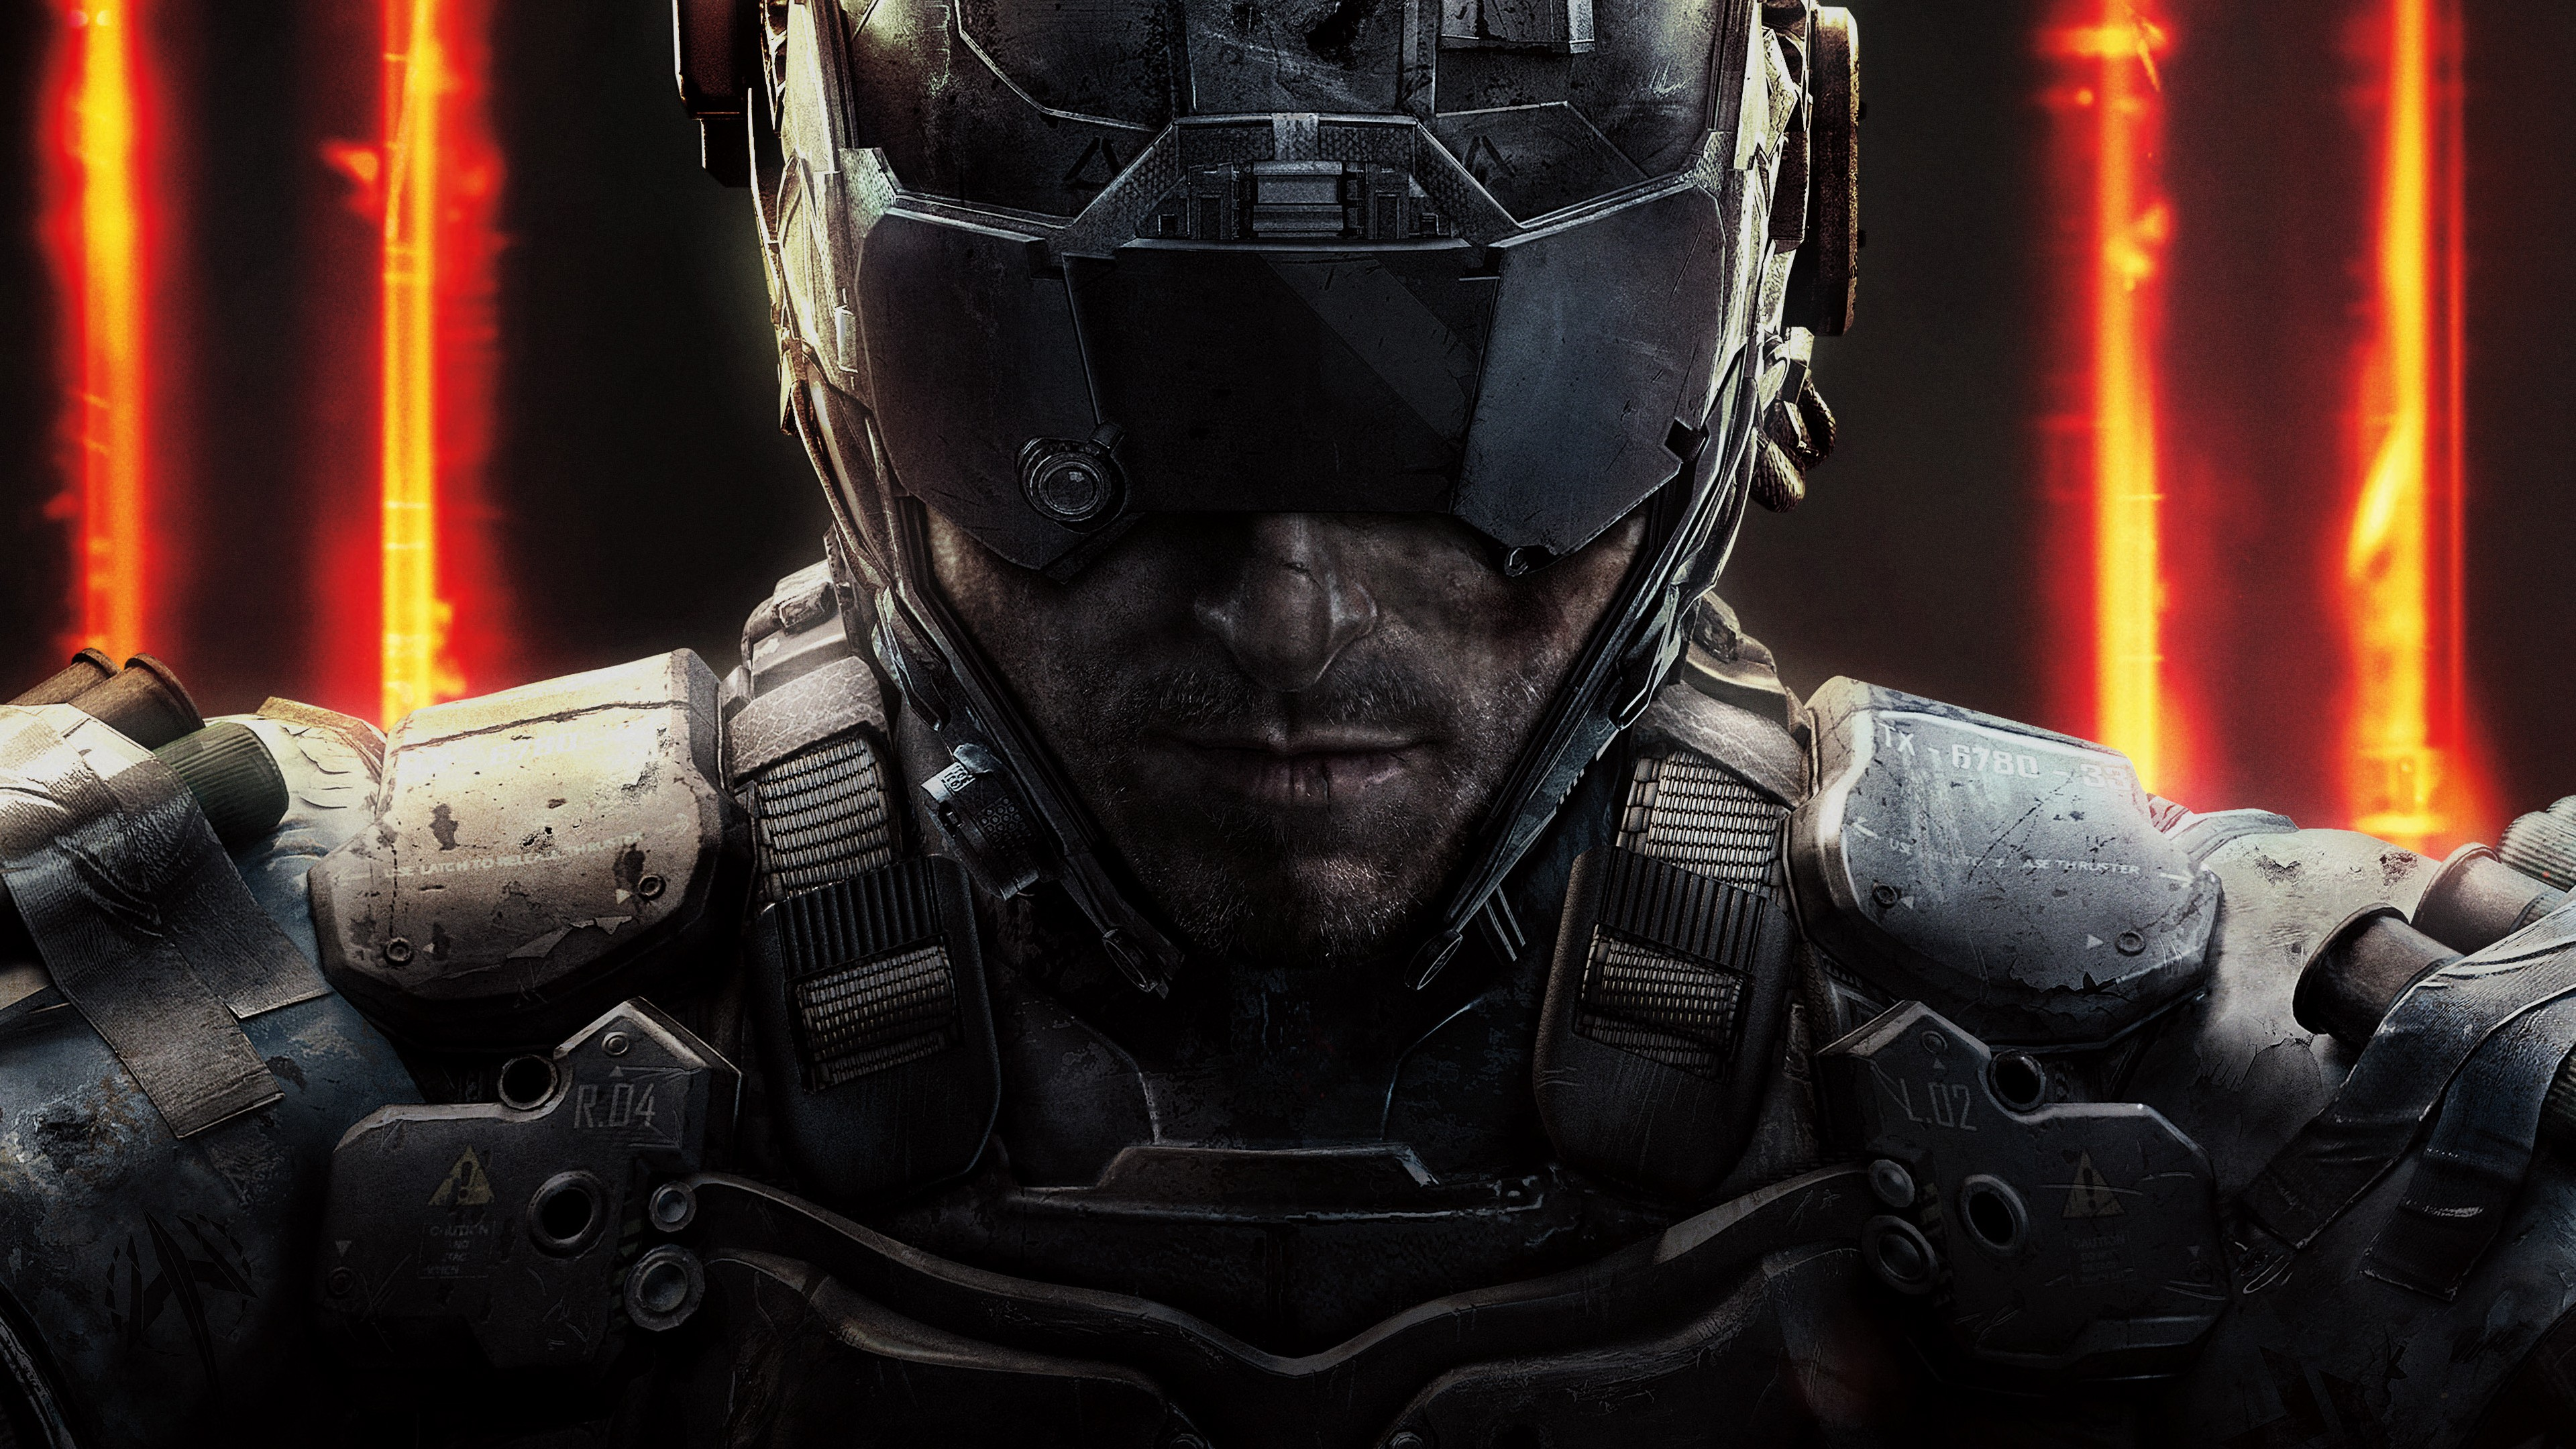 Free Download Call Of Duty Black Ops 3 Hd Wallpapers Download